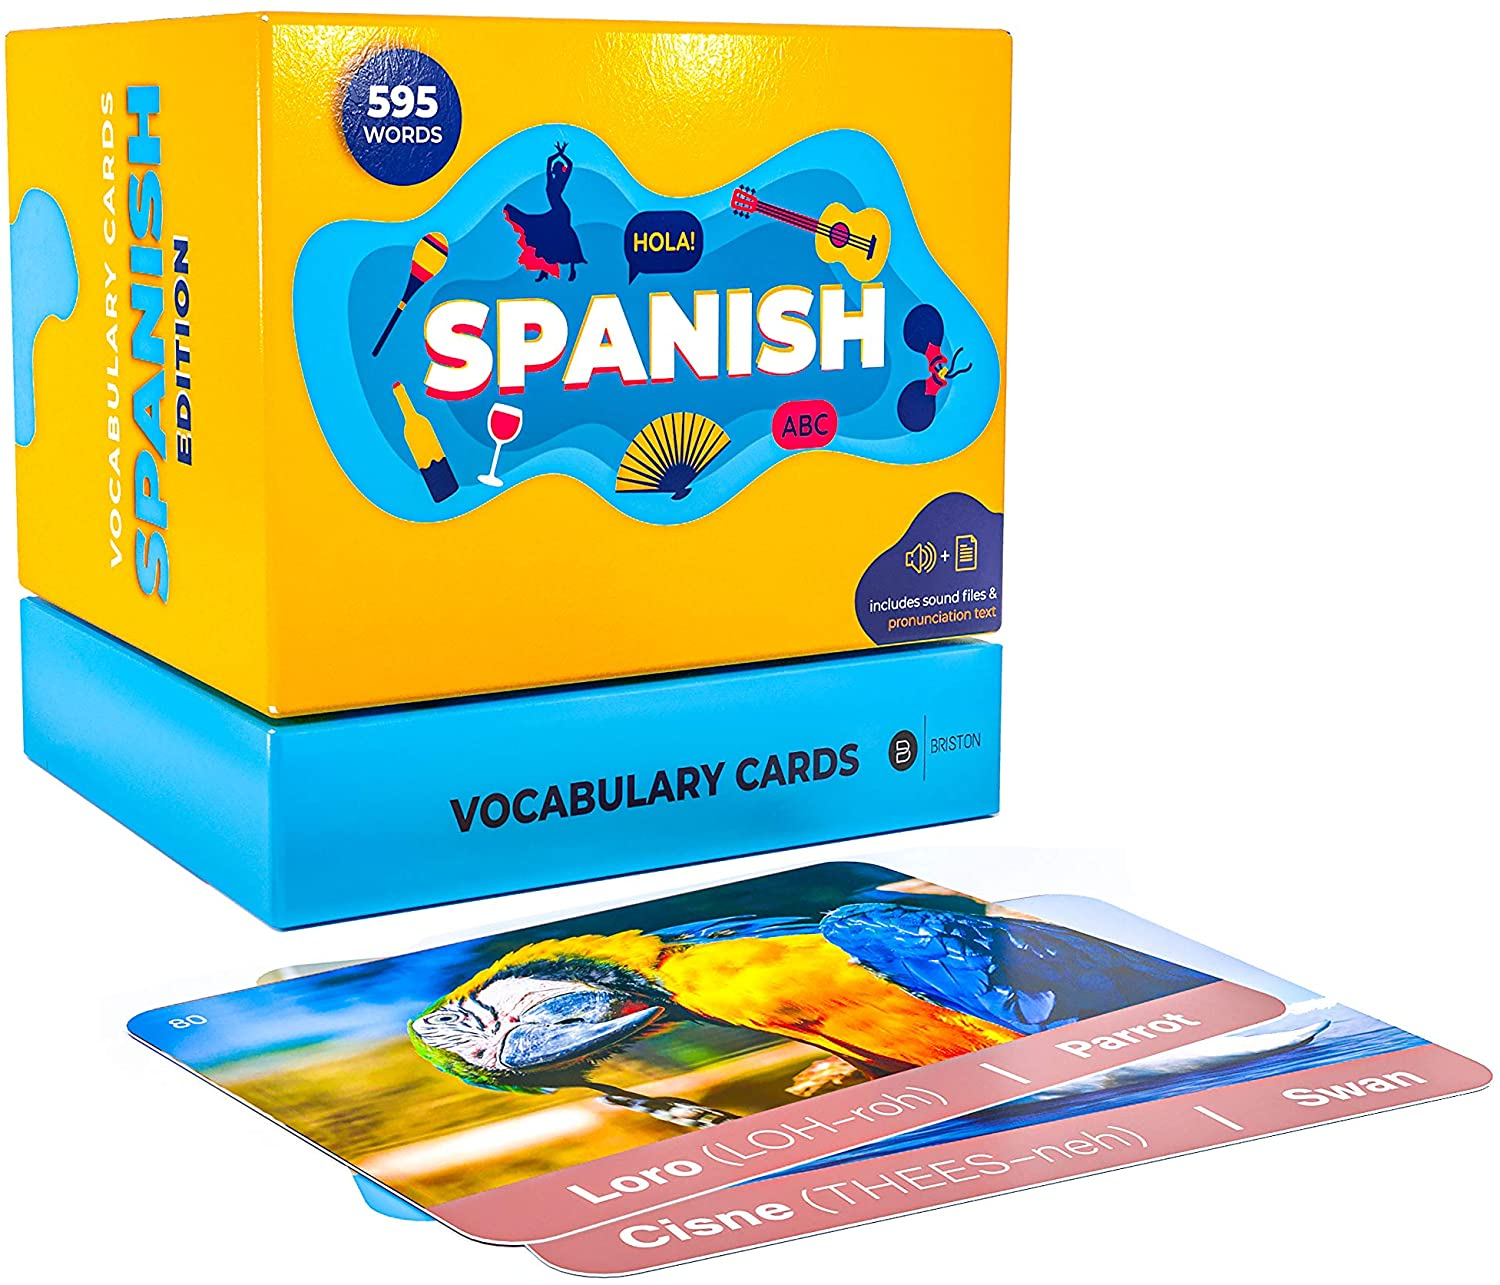 Amazon Com Briston Spanish Vocabulary Learning Flash Cards With Pictures For Beginners Adults And Kids With Text And Audio Pronunciation 595 Words Toys Games It's no wonder that you're finding these spanish prepositions confusing — de and a can have different meanings depending on how they're used. briston spanish vocabulary learning flash cards with pictures for beginners adults and kids with text and audio pronunciation 595 words